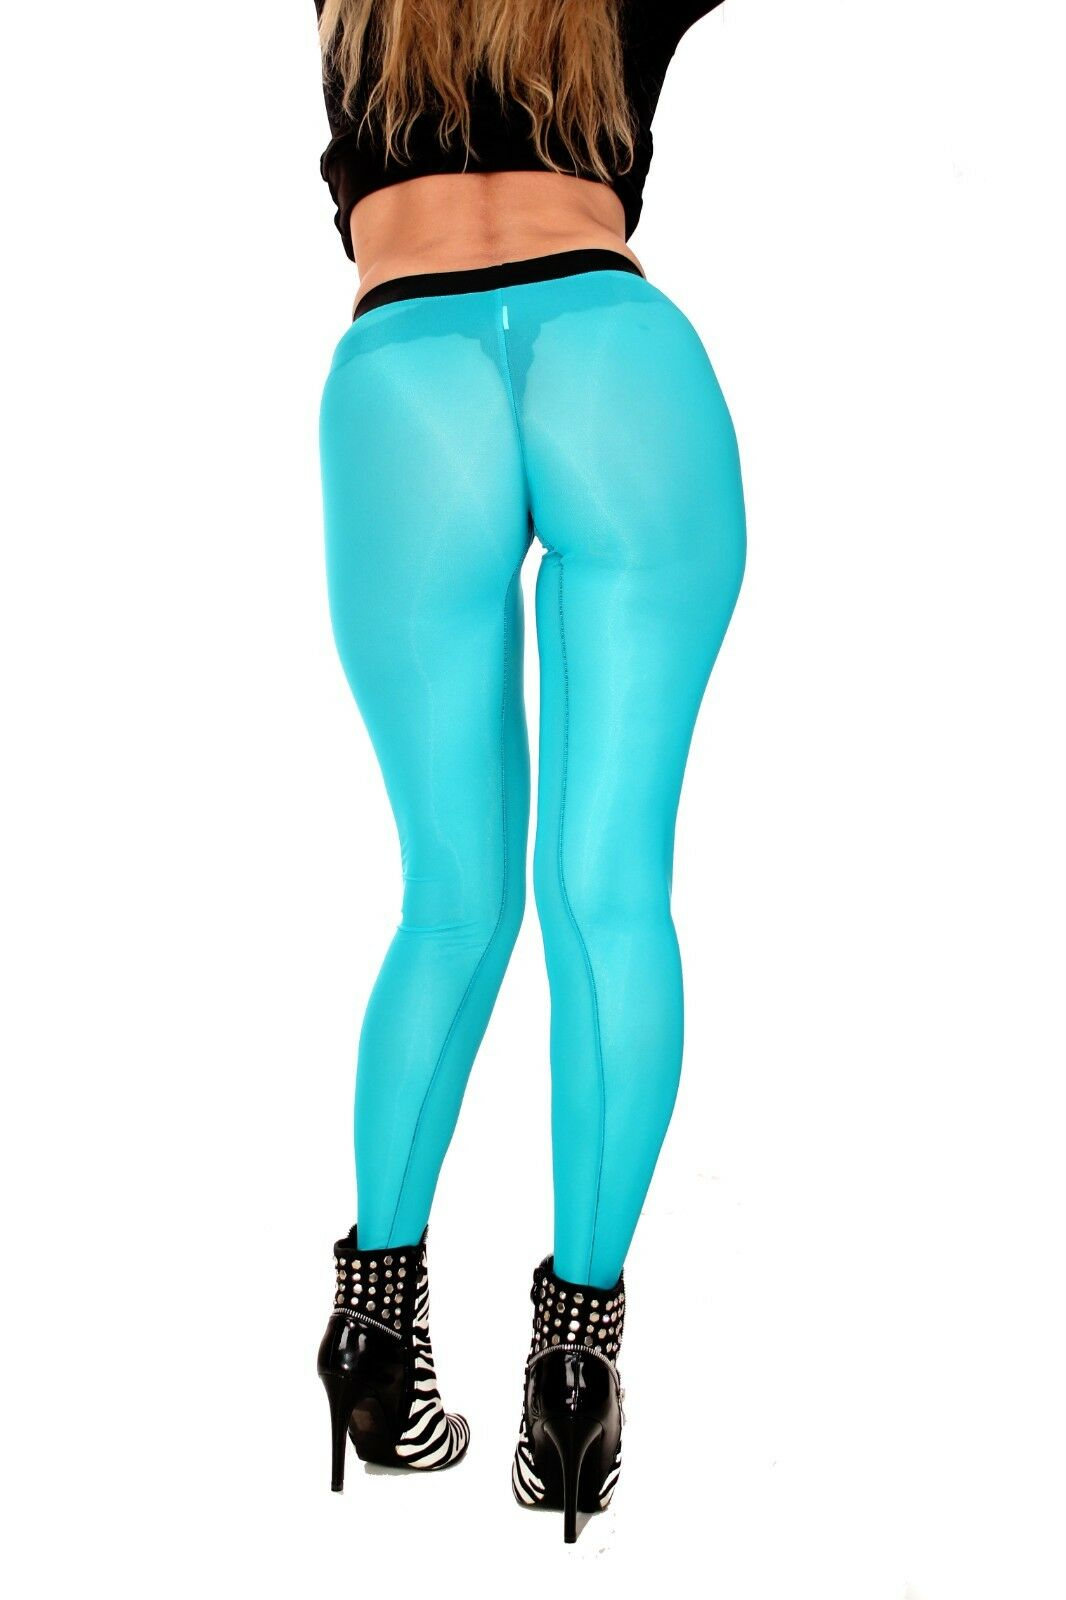 PUSSYRIOT Transparent NaturalContour Leggings HL2AX-B4 SheerSpandex 80 BLAU - M